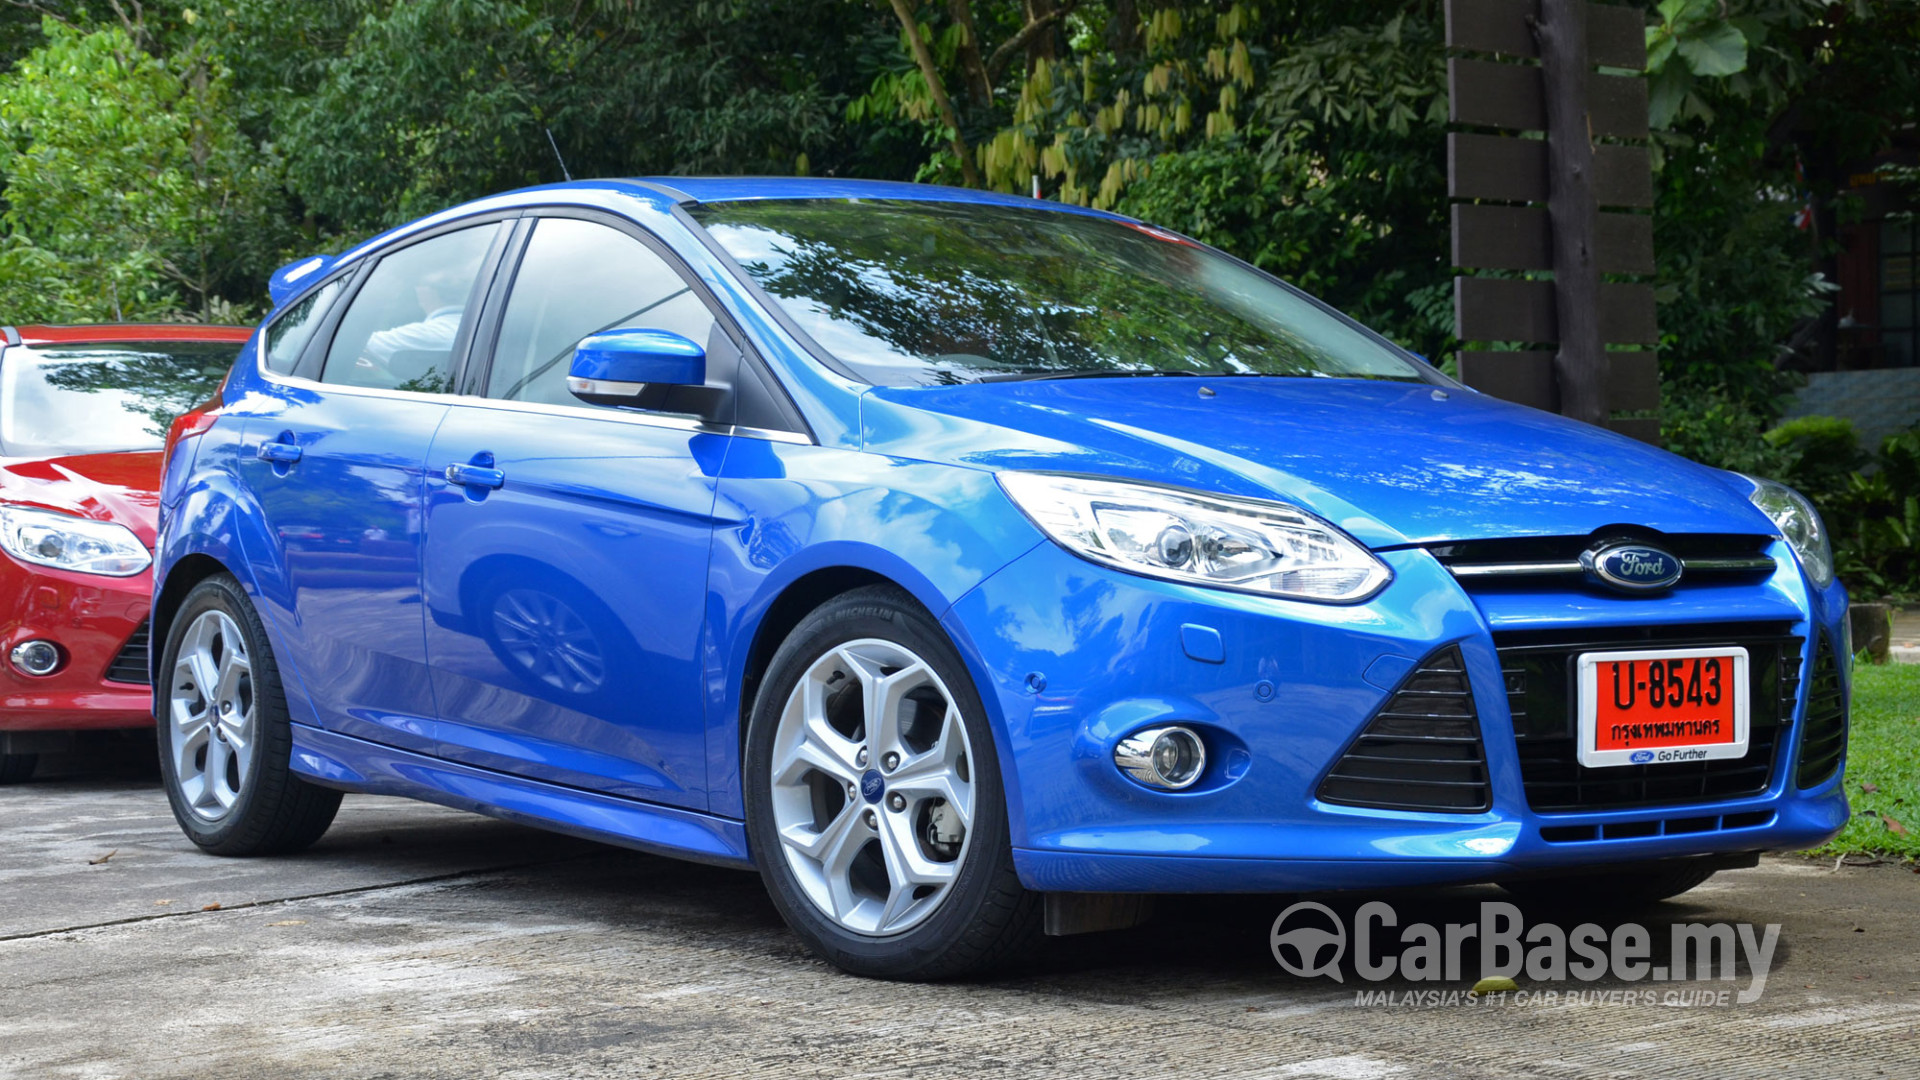 Ford Focus Mk3 C346 2012 Exterior Image 9324 In Malaysia Reviews Specs Prices